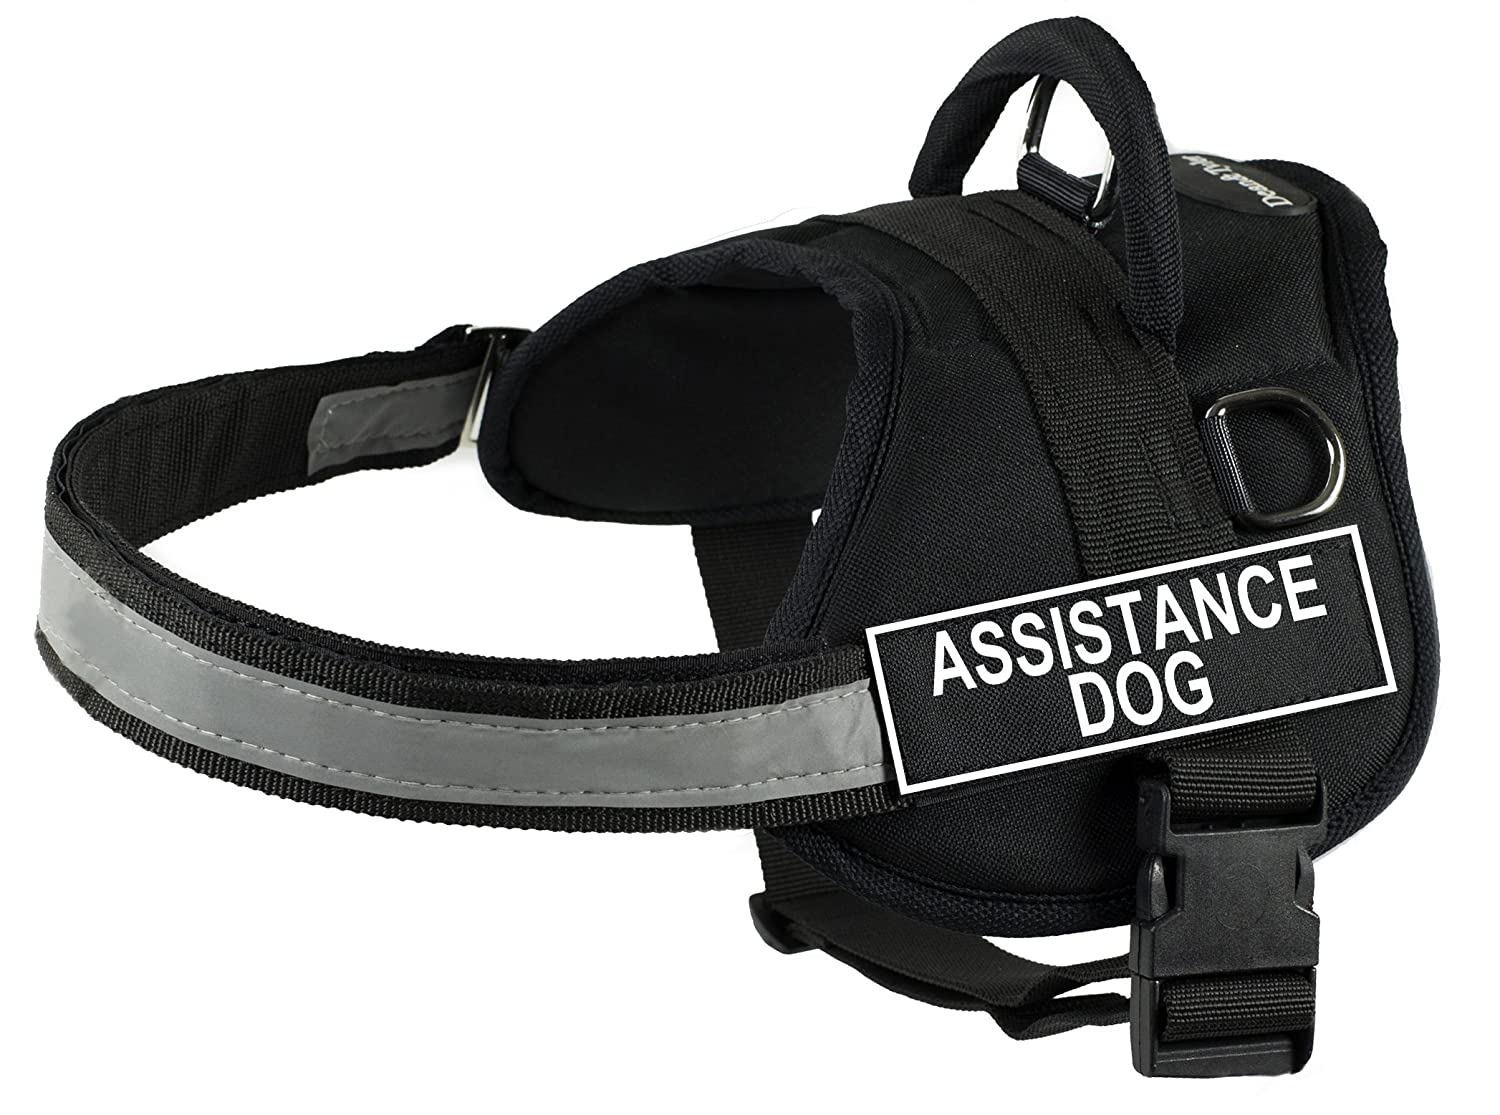 Dean & Tyler DT Works, Assistance Dog, Small DT Works Harness Assistance Dog, Black White, Small-Fits Girth Size  64cm to 86cm